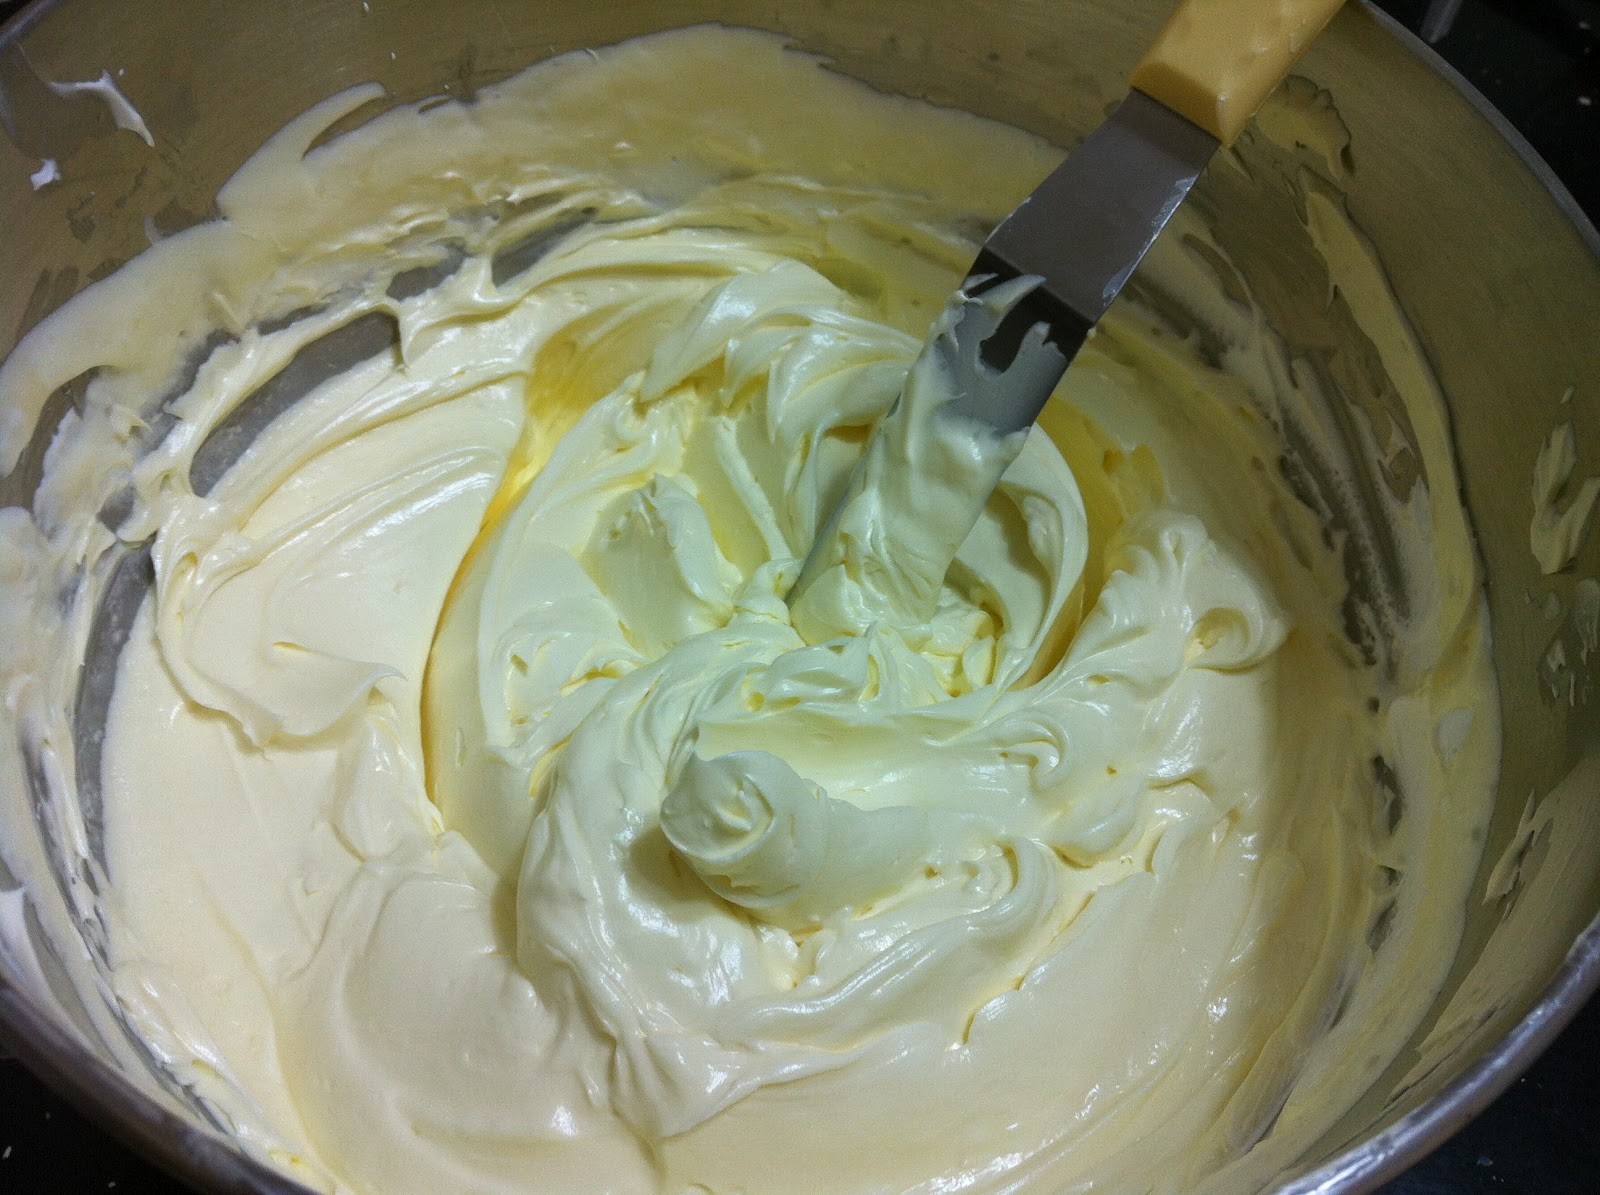 Food for thought: Swiss Meringue Buttercream